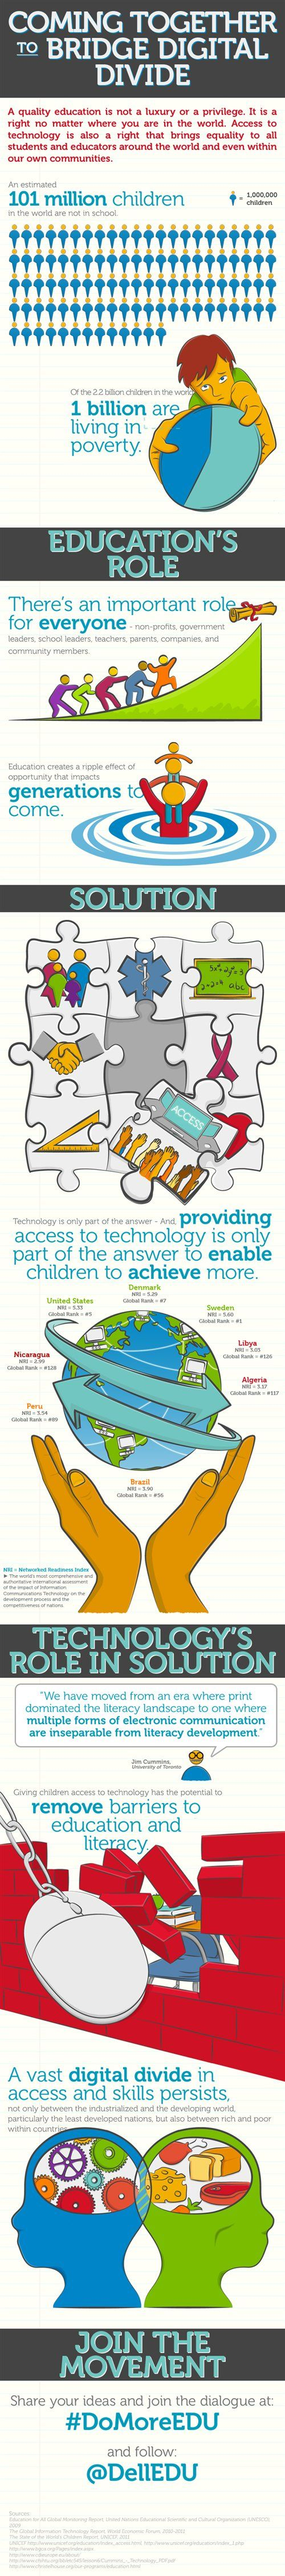 best images about the digital divide arne duncan coming together to bridge the digital divide